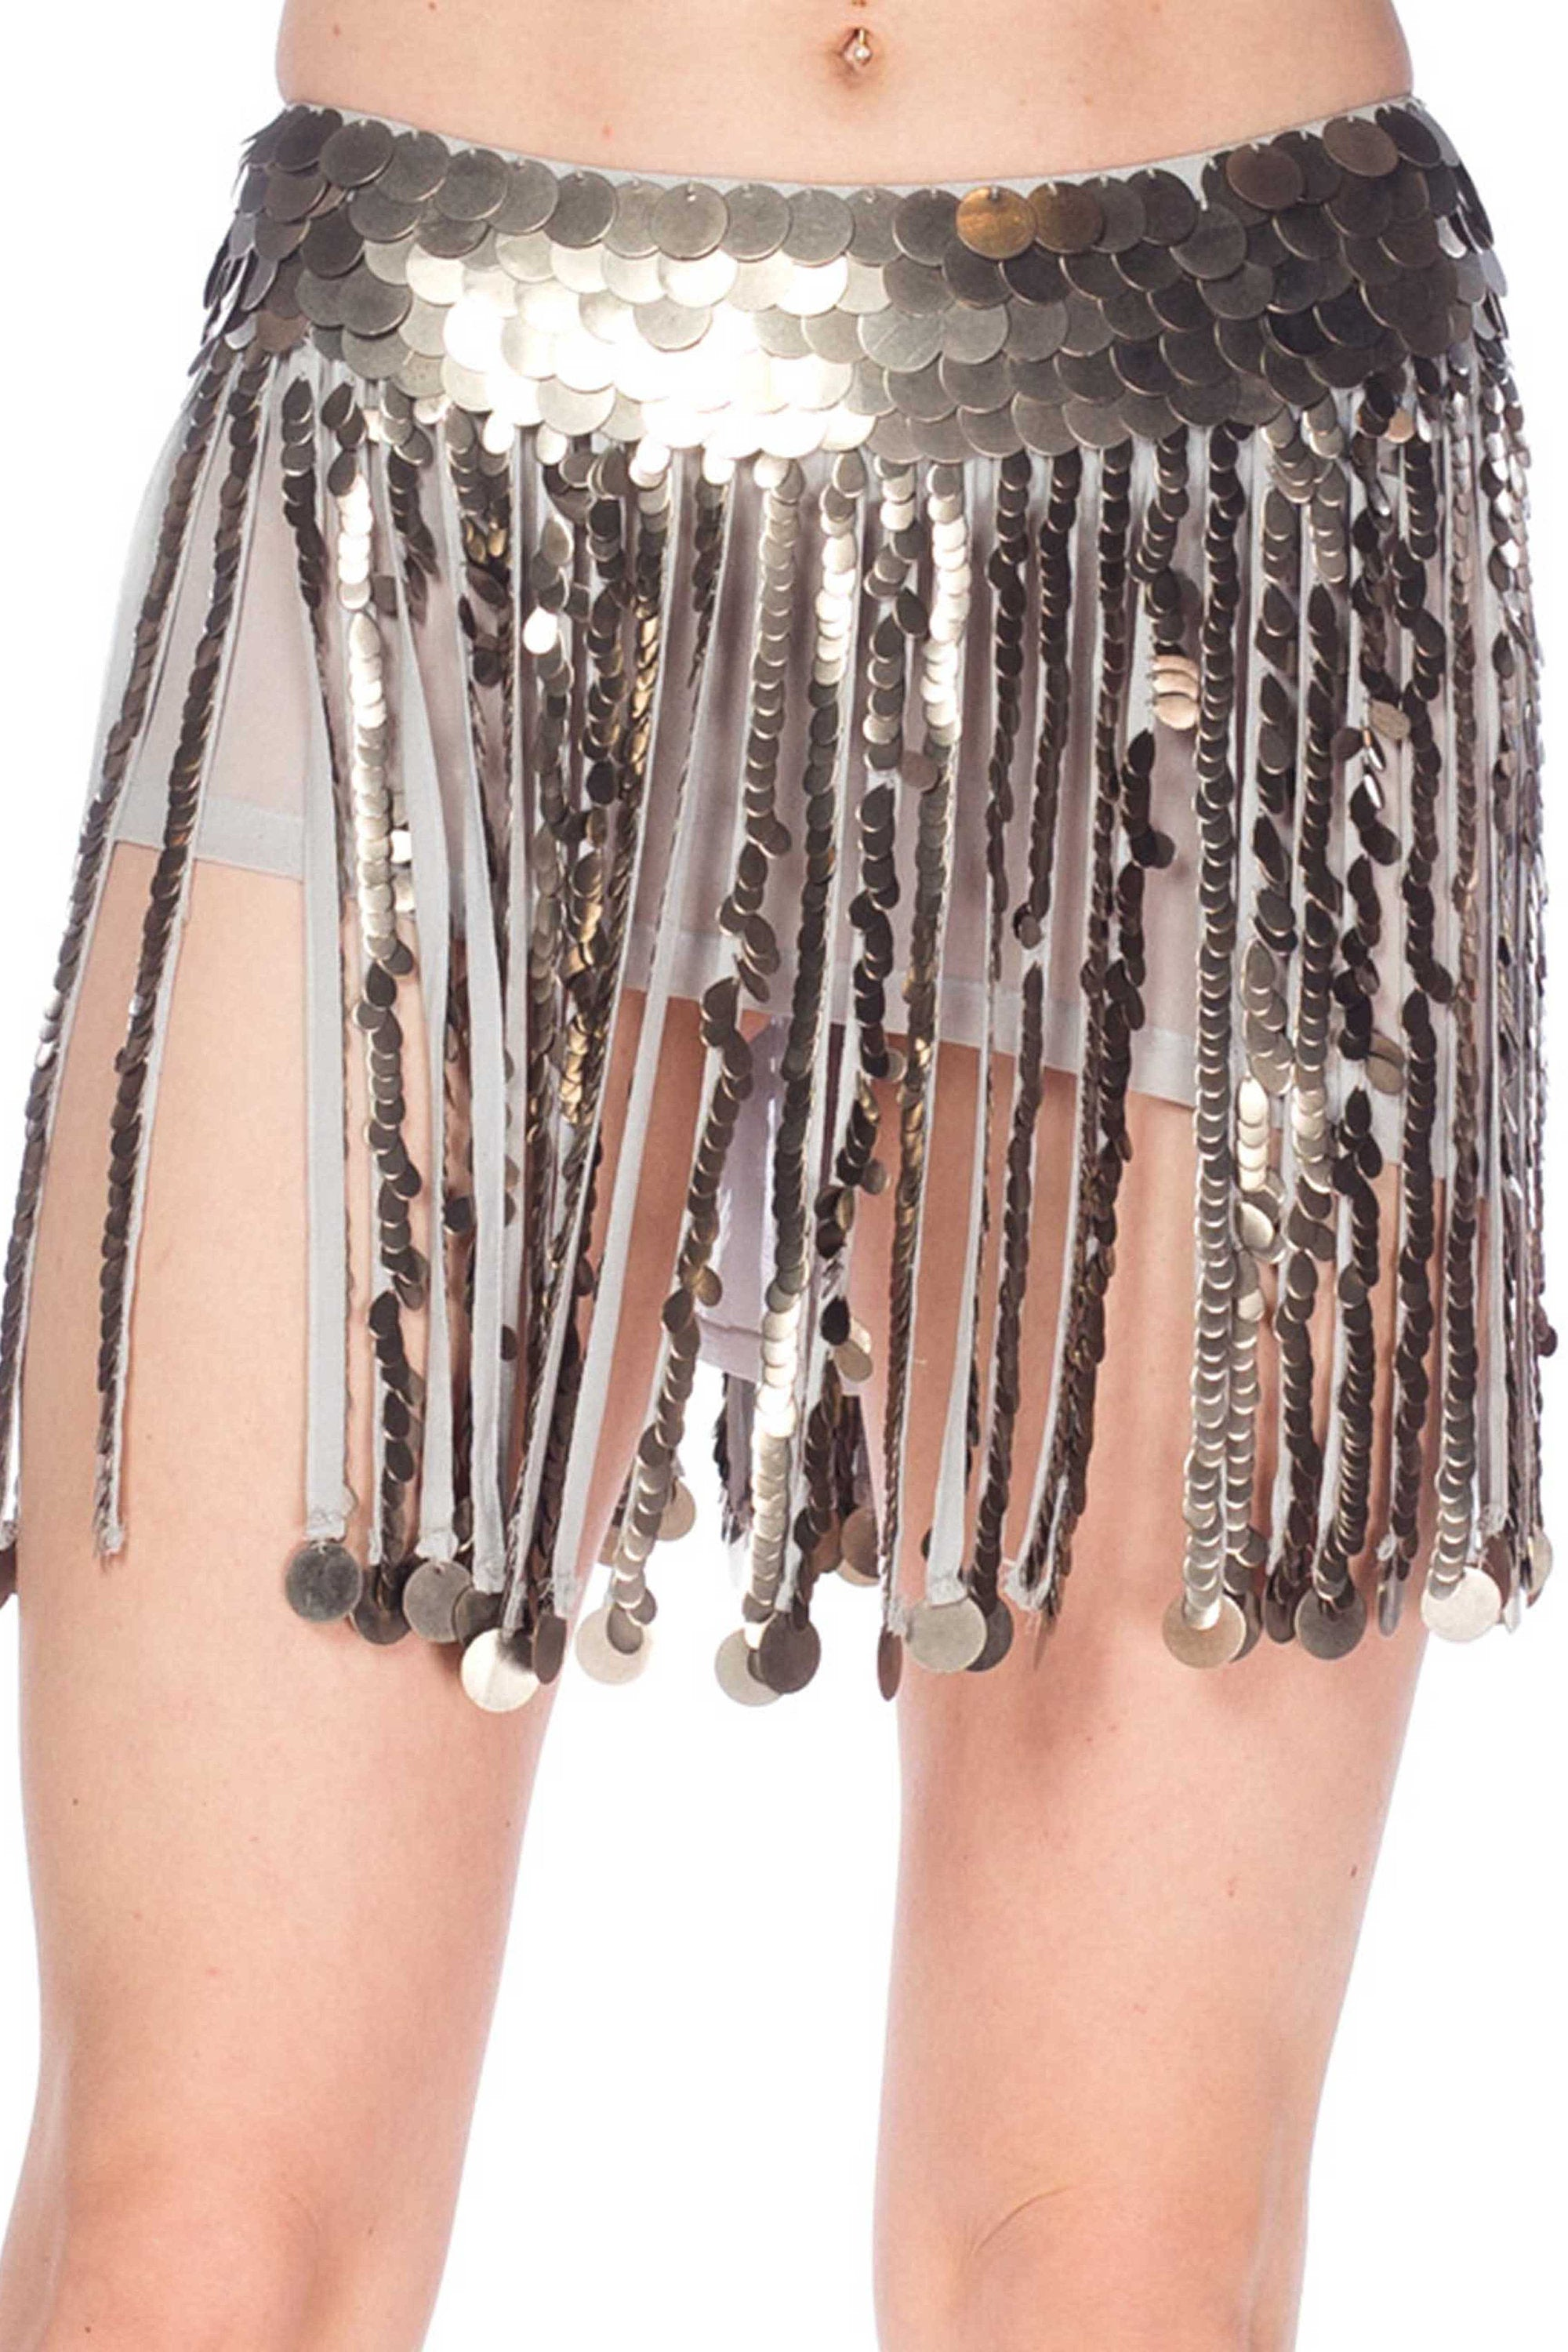 2000S Grey Silk Crepe & Georgette Fringe Mini Skirt Covered In Metal Pailettes